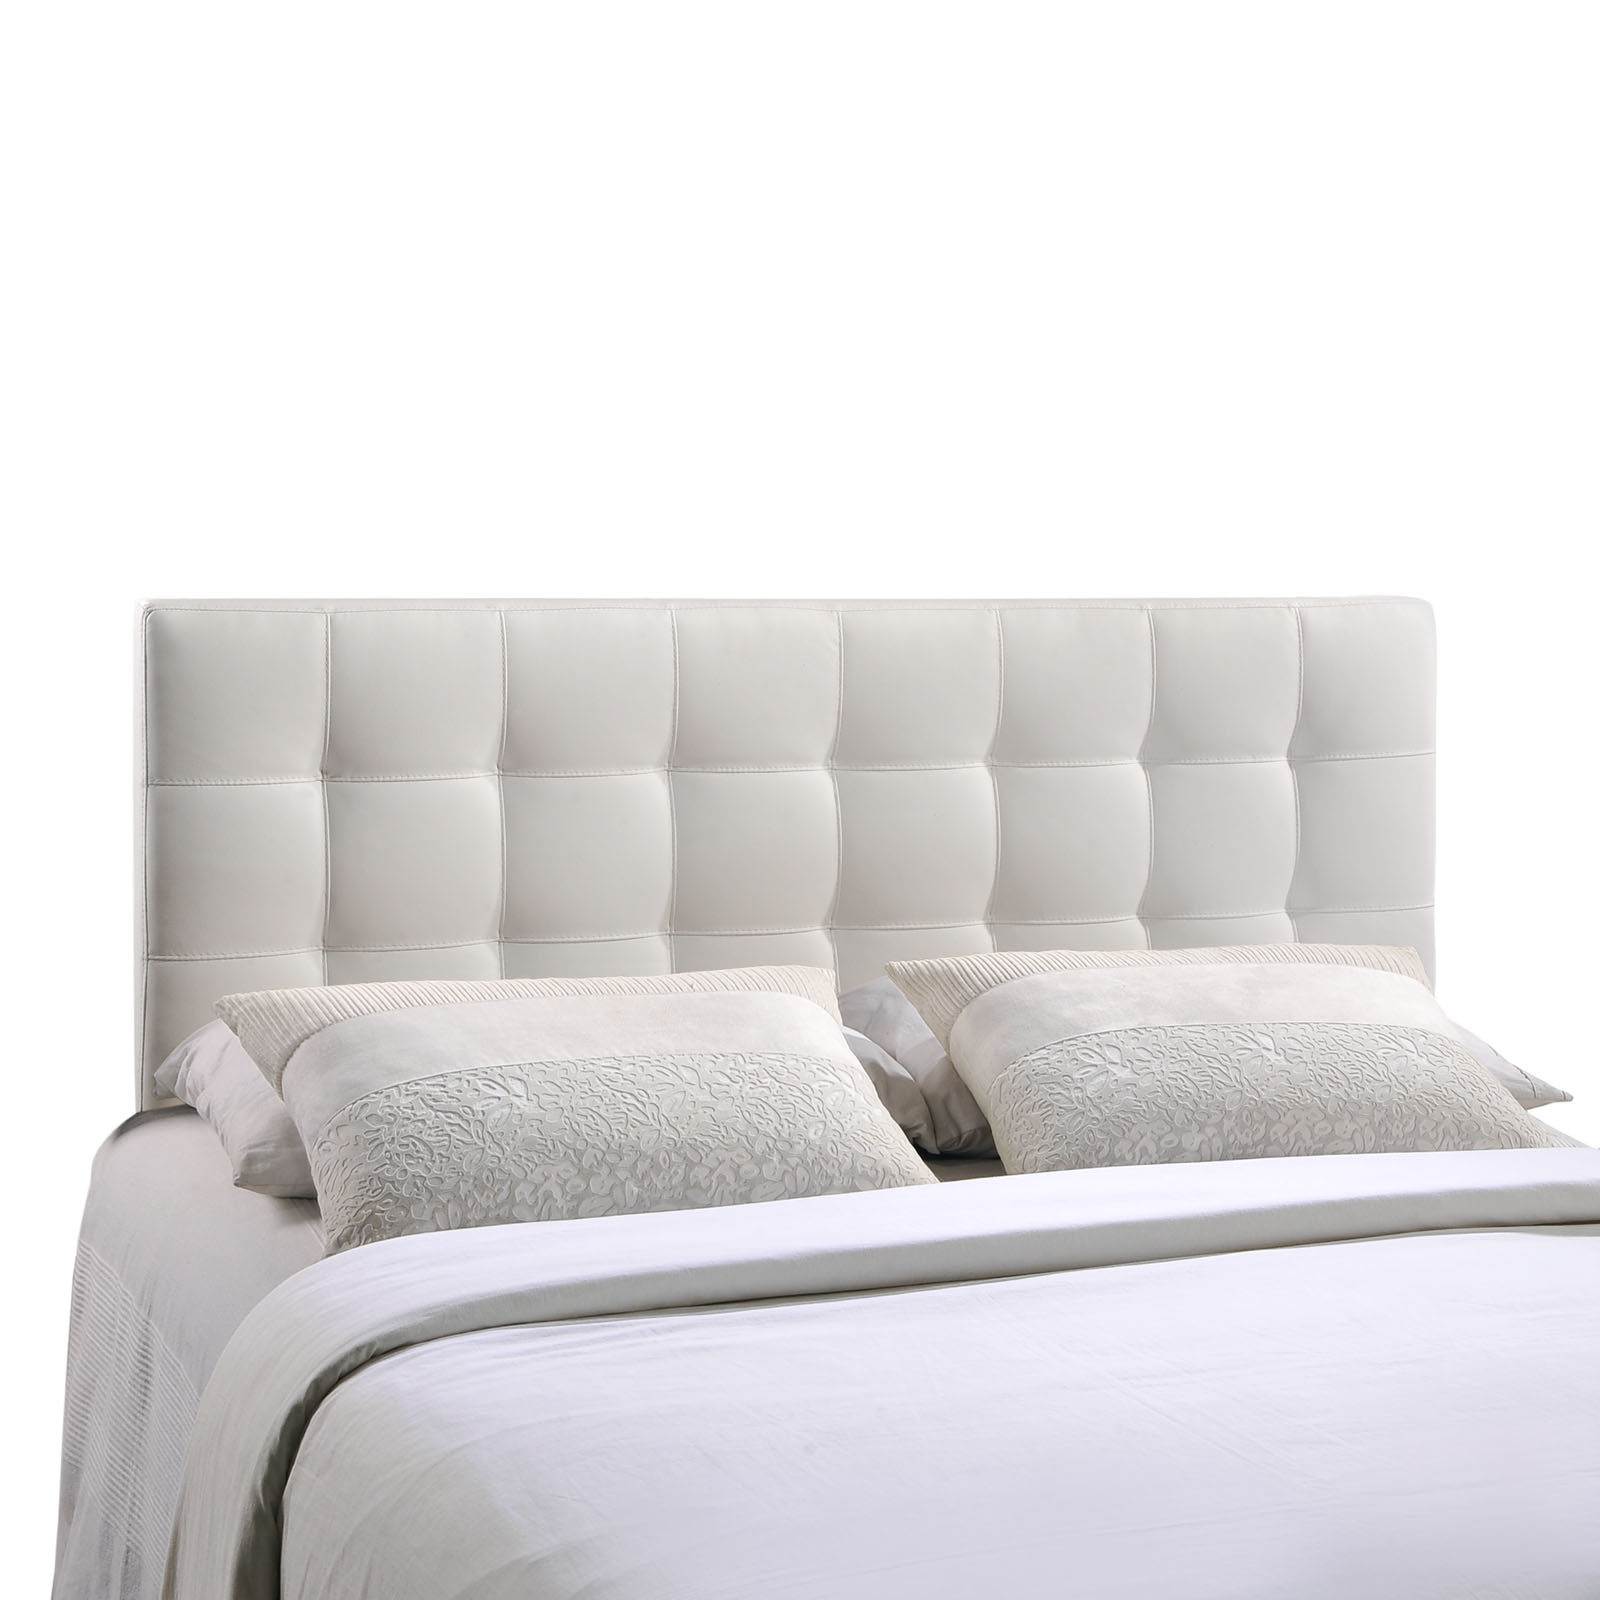 Modern Contemporary King Size Vinyl Headboard, White Faux Leather